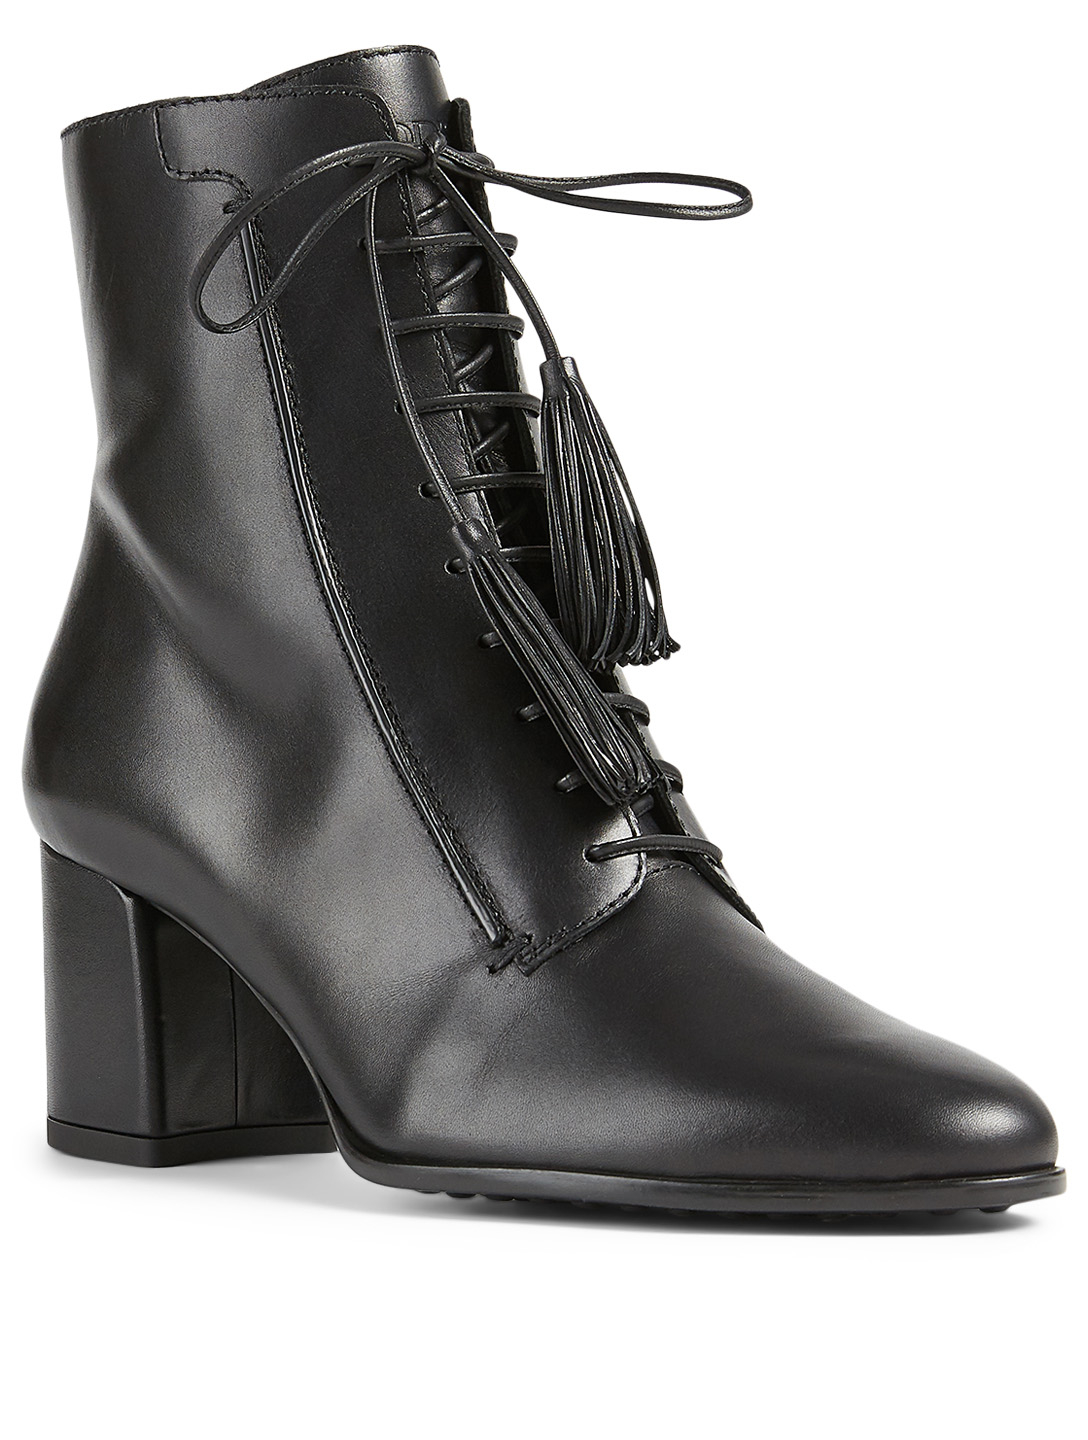 TOD'S Leather Lace-Up Heeled Ankle Boots Women's Black